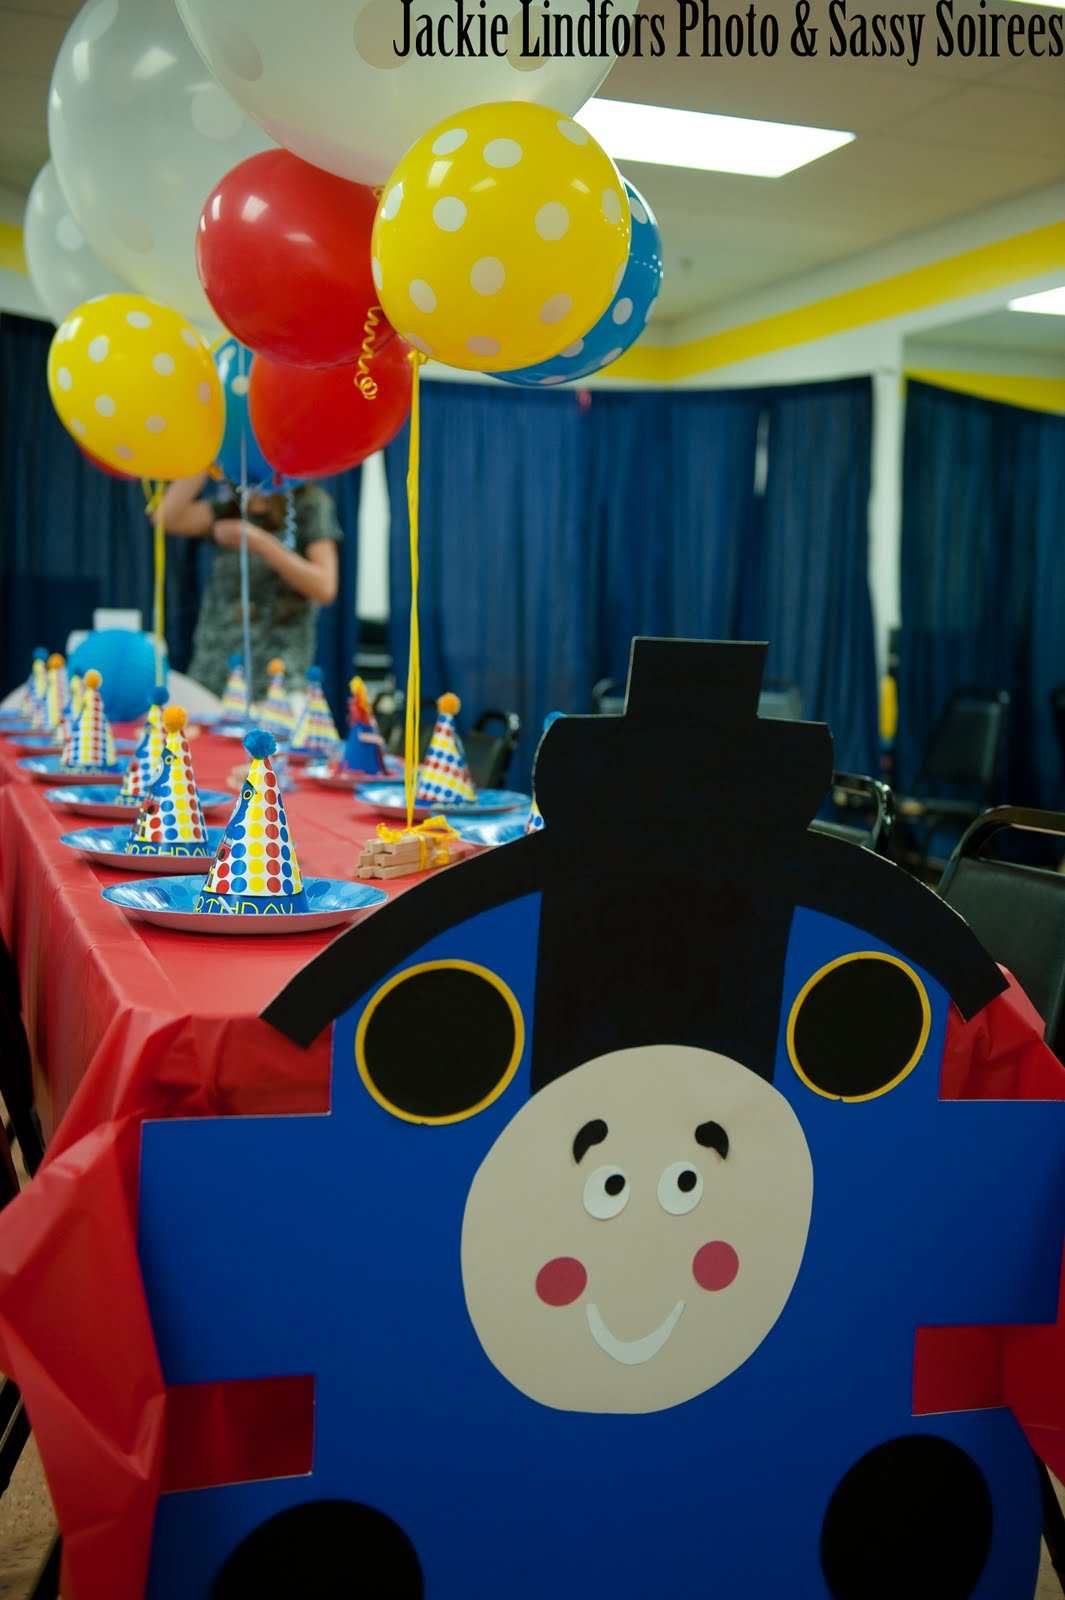 sassy soirees wedding event planning thomas the train birthday party. Black Bedroom Furniture Sets. Home Design Ideas